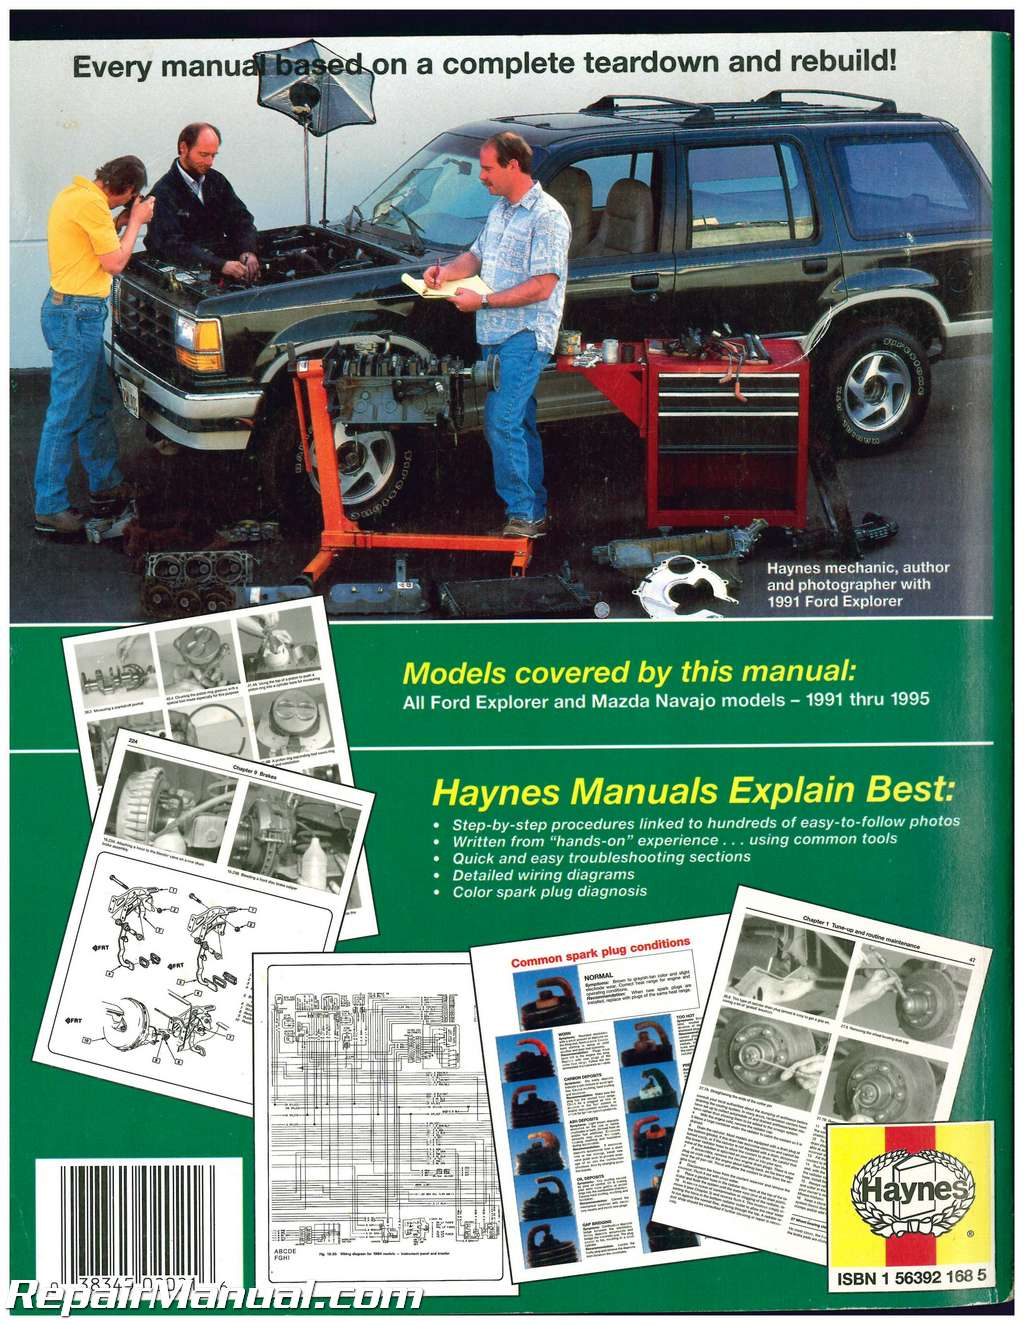 Used Ford Explorer Mazda Navajo & Mercury Mountaineer Automotive Repair  Manual 1991-1995 Haynes